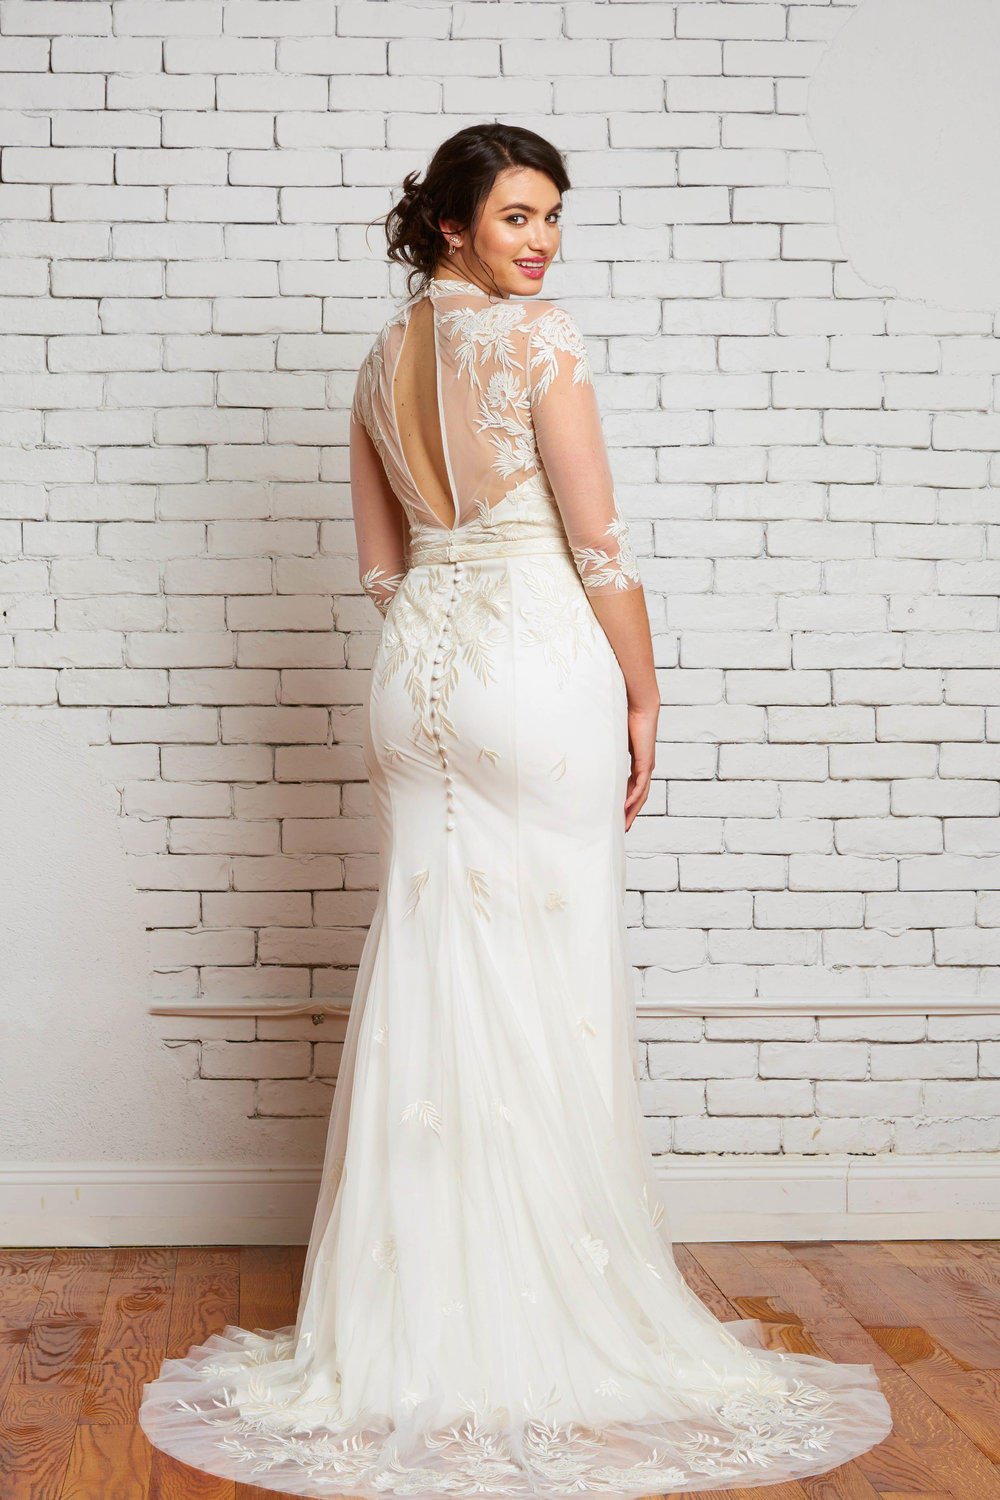 savannah-bridal-shop-ivory-and-beau-bridal-boutique-plus-size-trunk-show-plus-size-wedding-dresses-rebecca-schoneveld-trunk-show-5.jpg